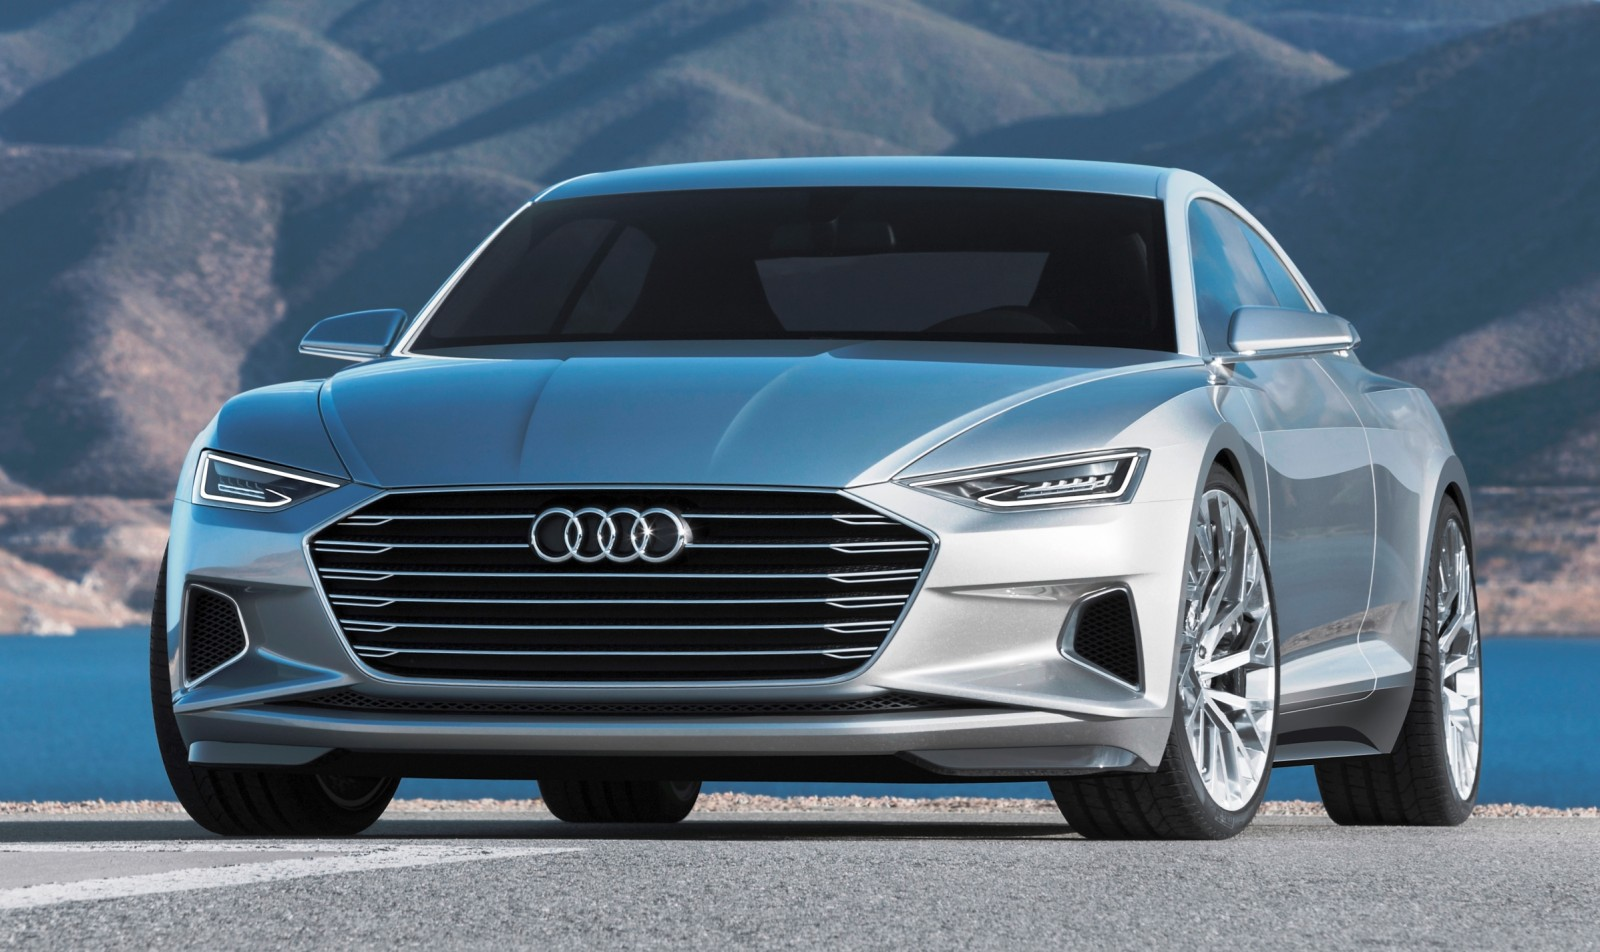 2014 Audi Prologue is Worst of LA 2014 20